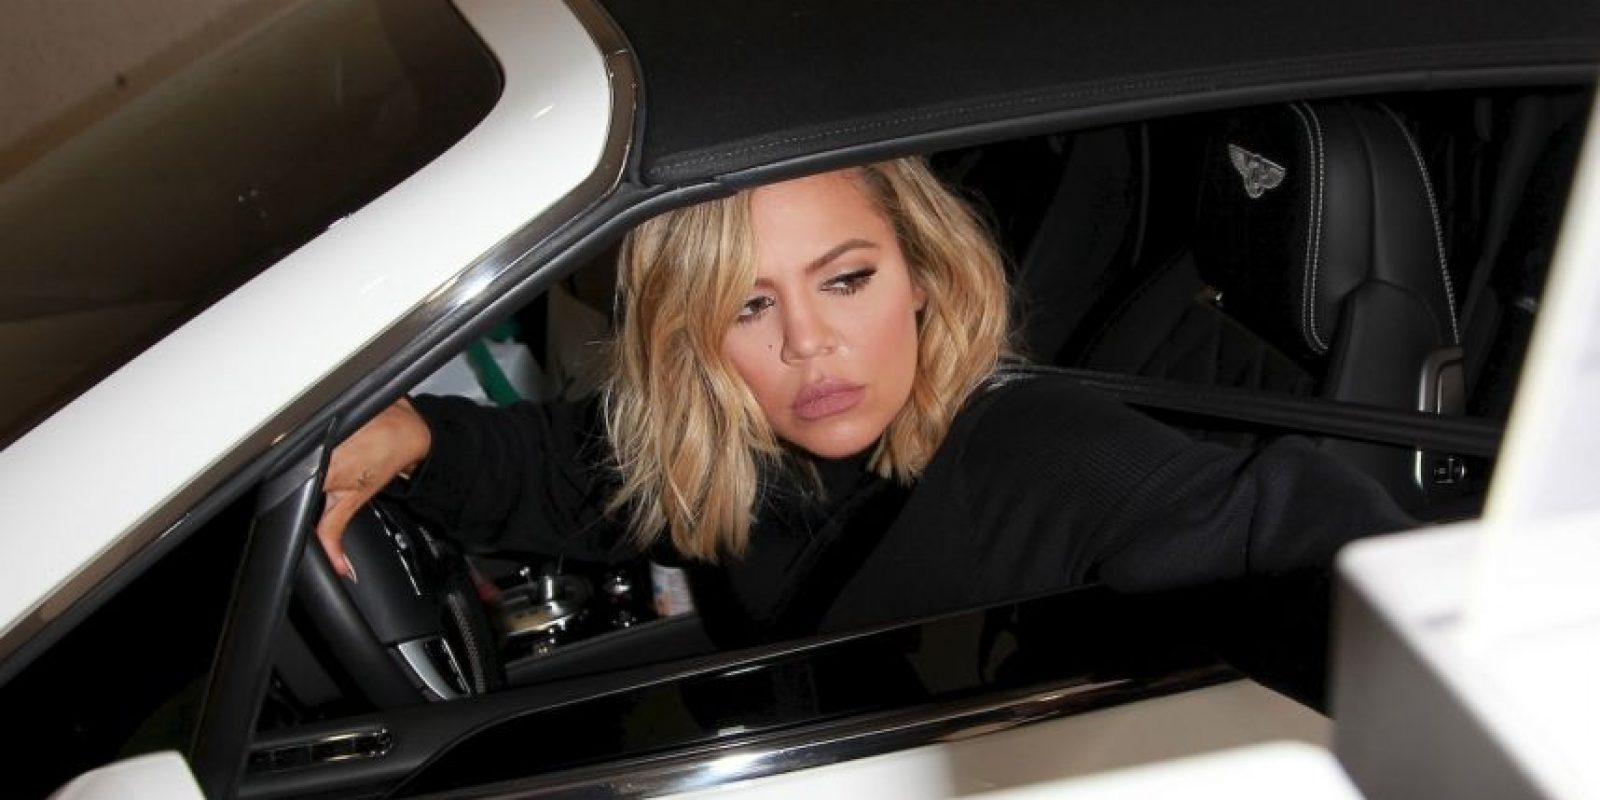 Su hermana Khloé Kardashian fue captada en su visita al hospital. Foto: The Grosby Group